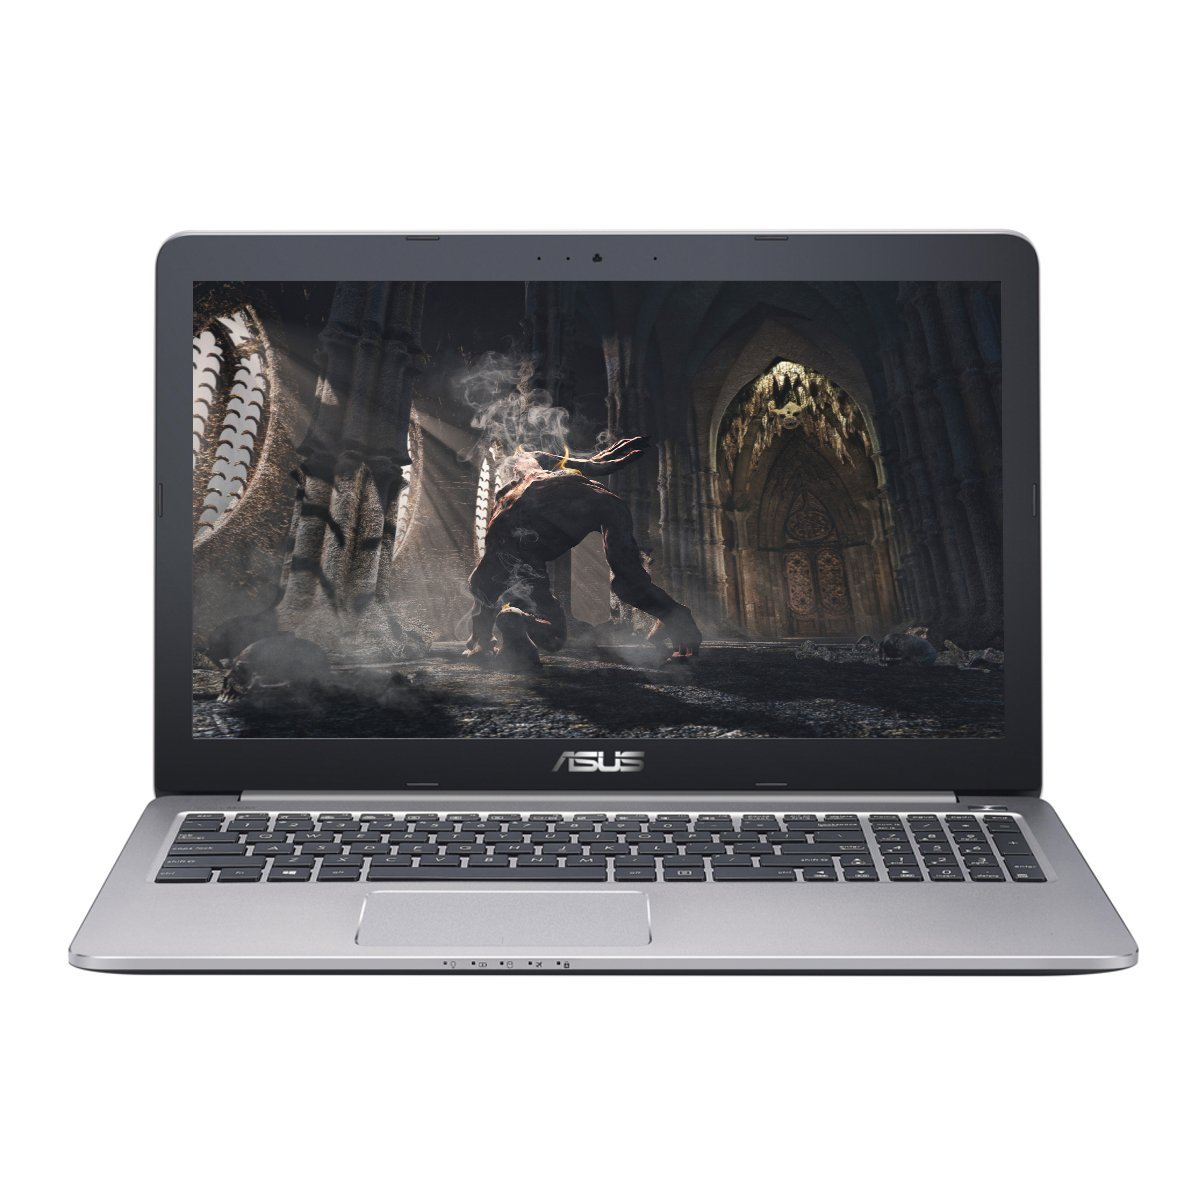 Asus K501UW Gaming Laptop